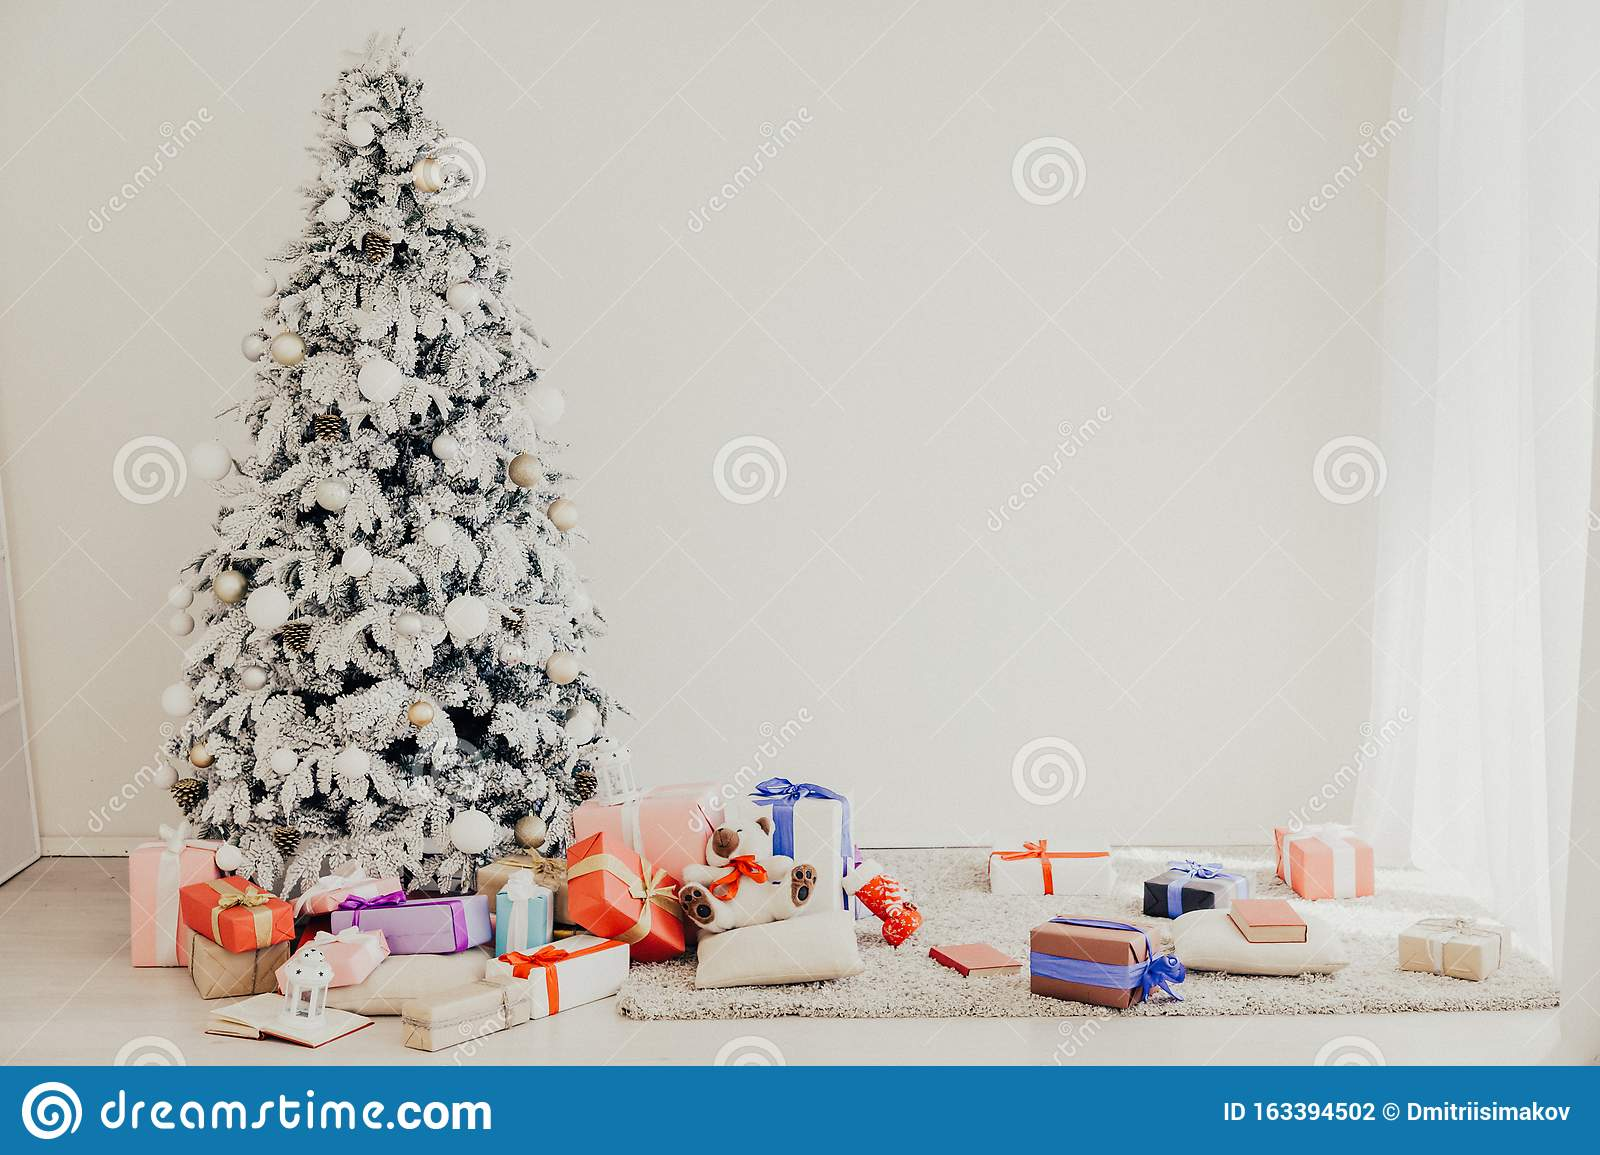 Christmas Home Interior With White Christmas Tree Gifts New Year Holiday Winter Stock Photo Image Of Modern Celebration 163394502